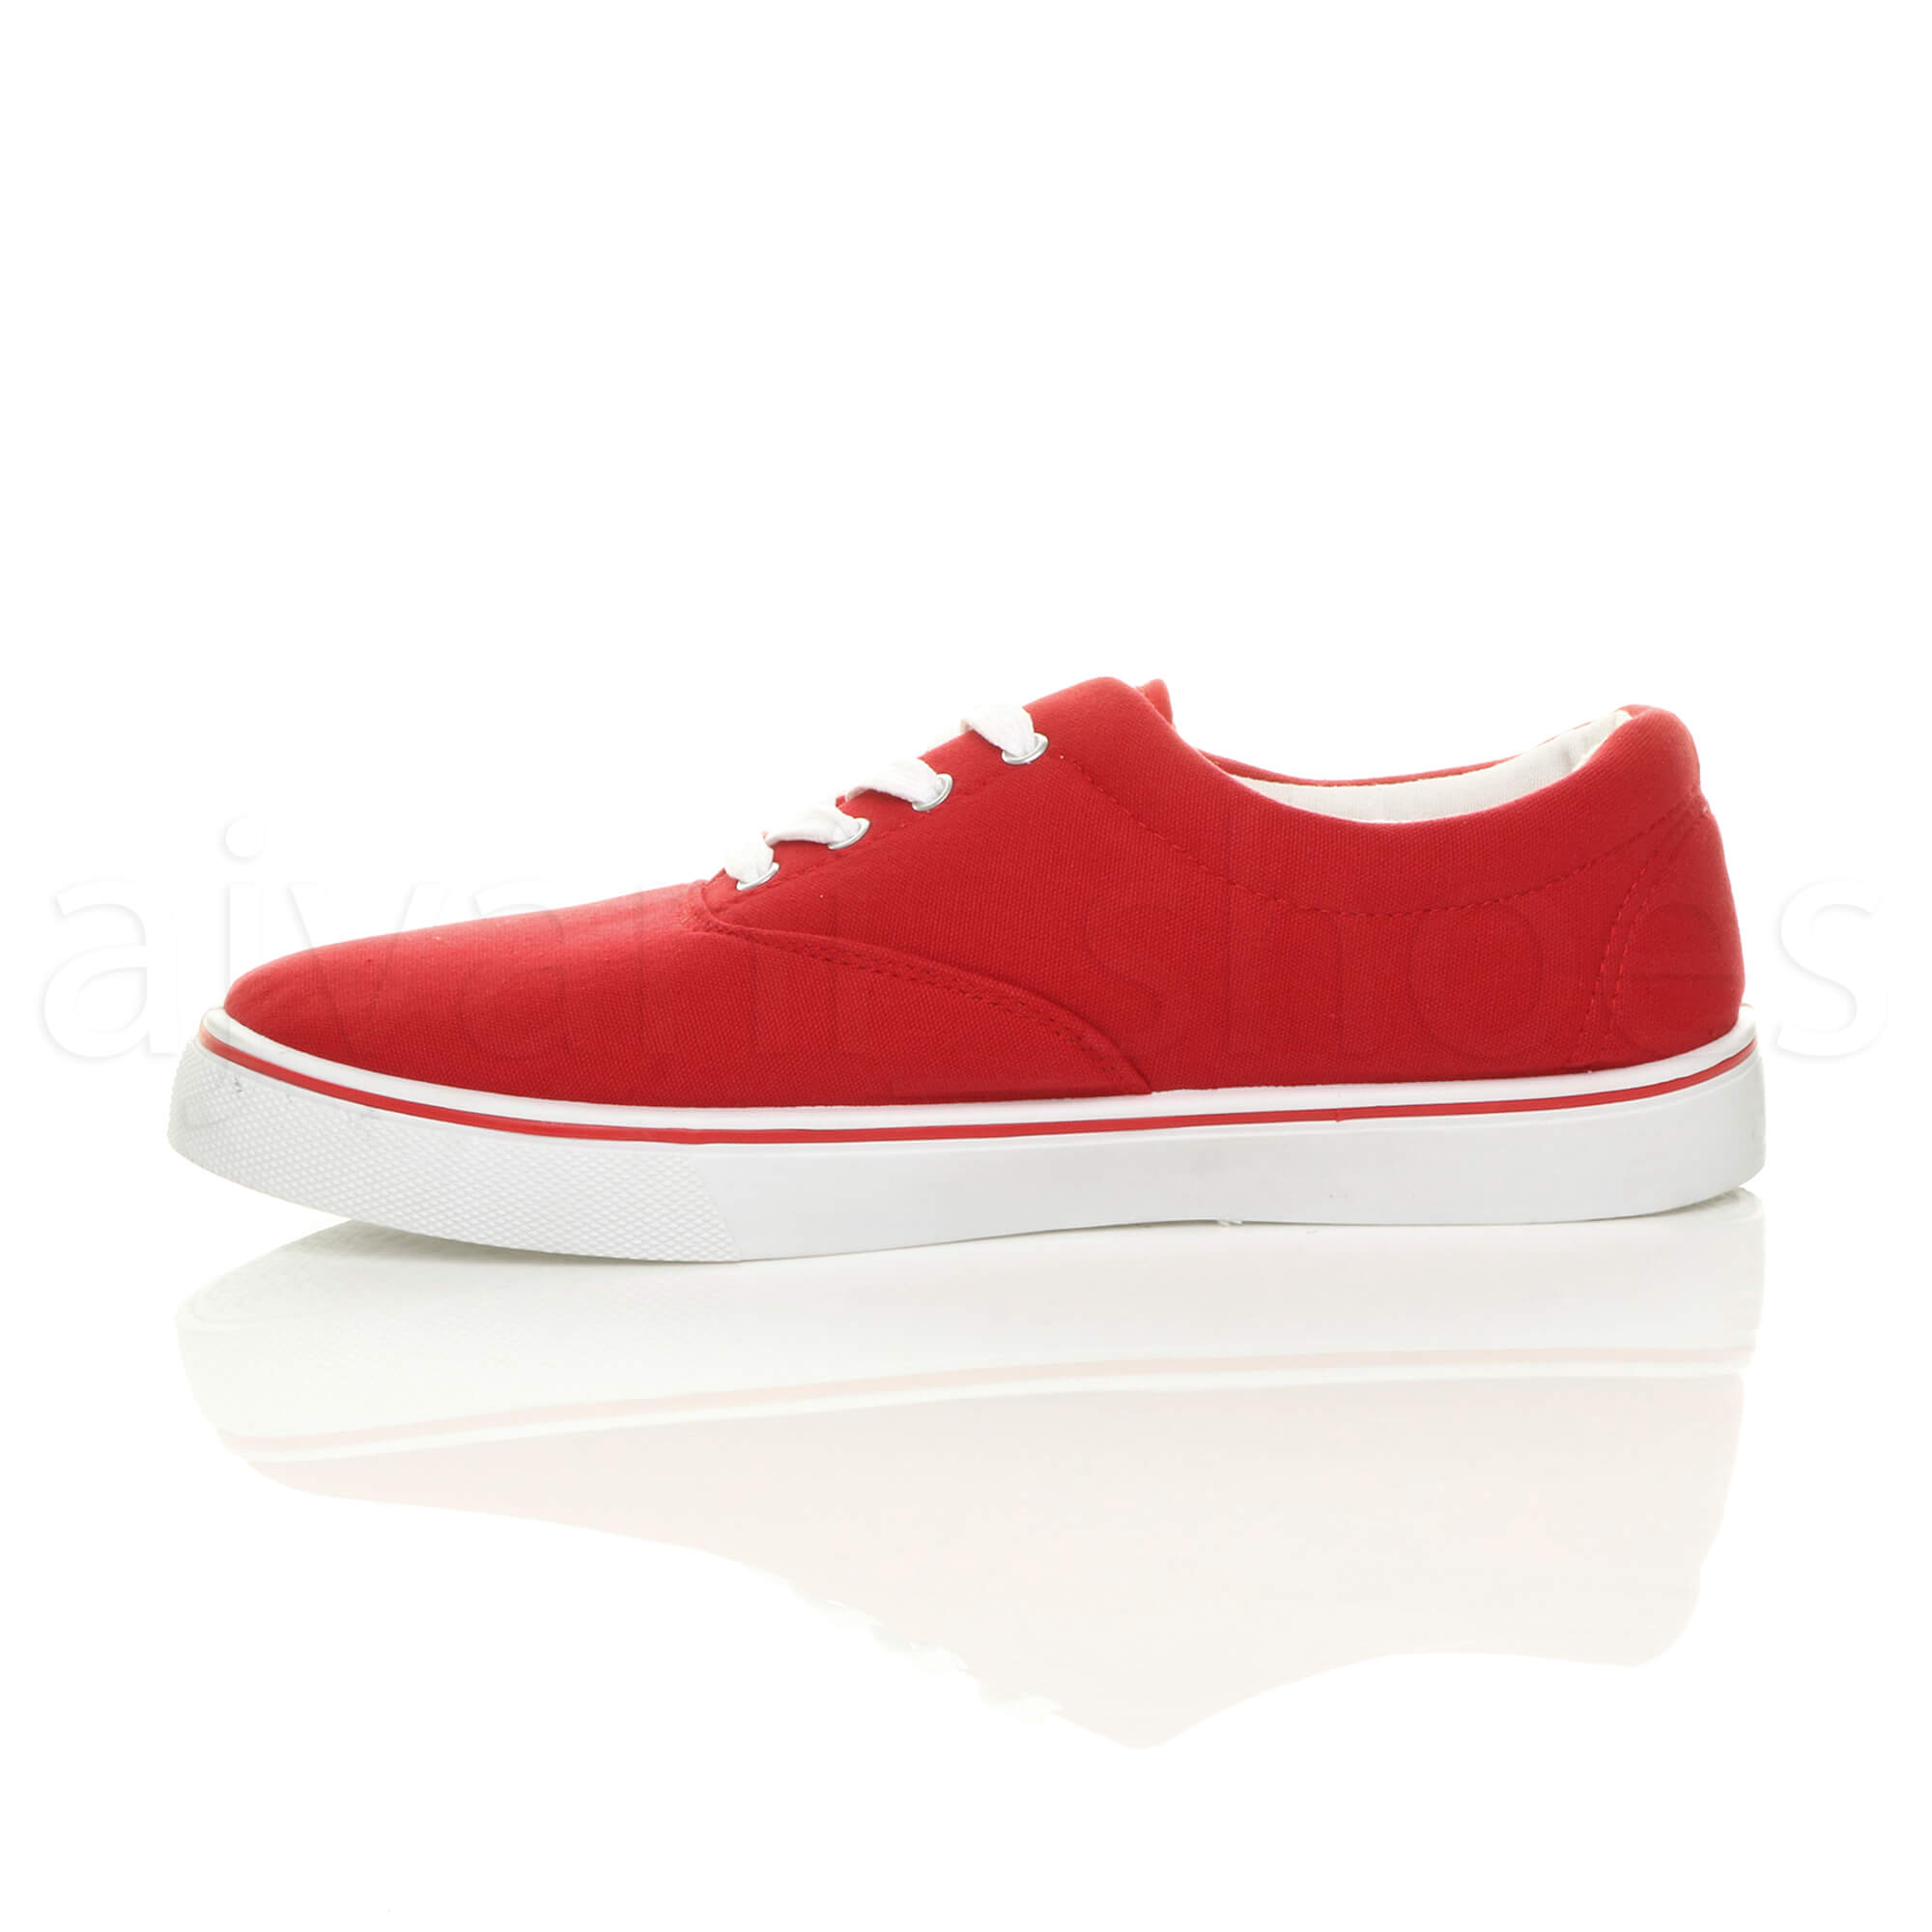 MENS-CANVAS-CASUAL-TRAINERS-PLIMSOLES-PLIMSOLLS-SHOES-LACE-UP-PUMPS-SIZE thumbnail 19